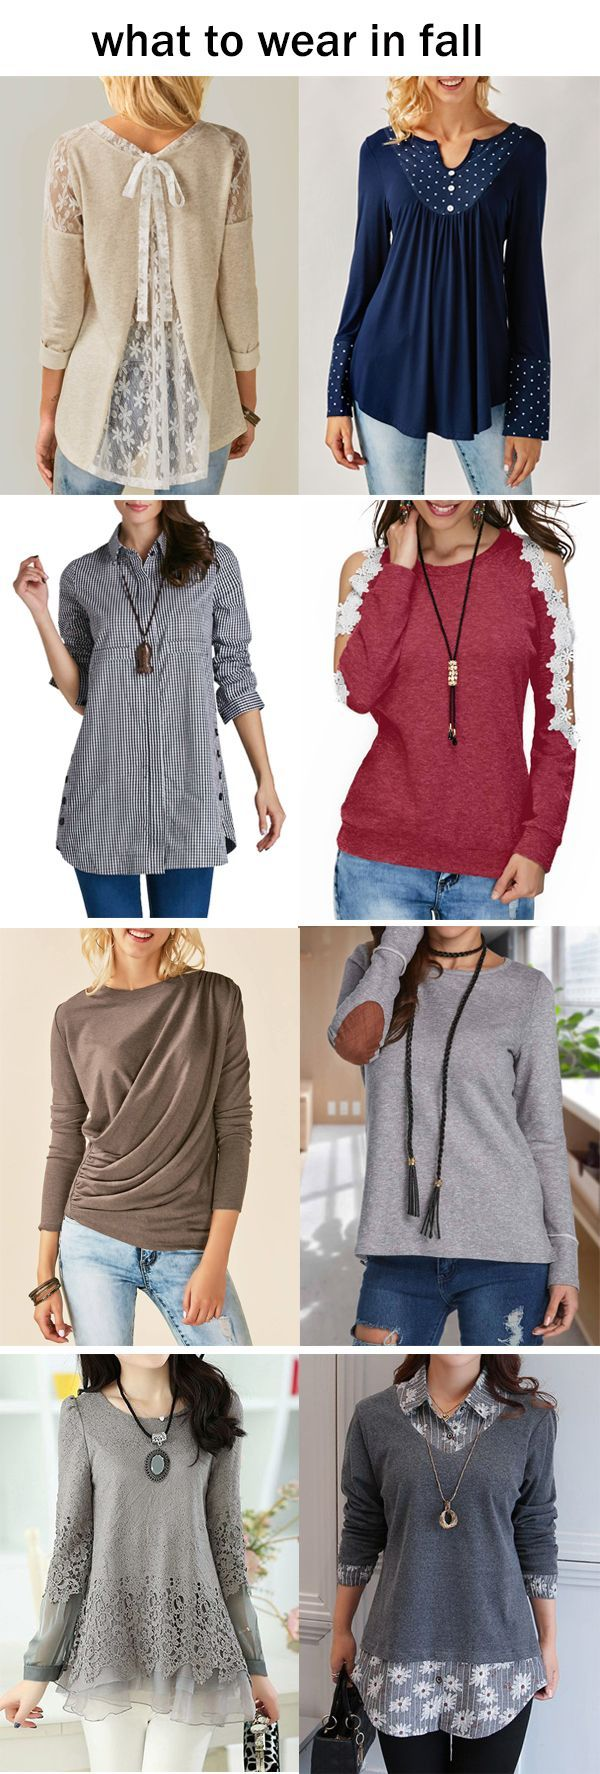 cute long sleeve tops for fall, click the picture to buy them now!